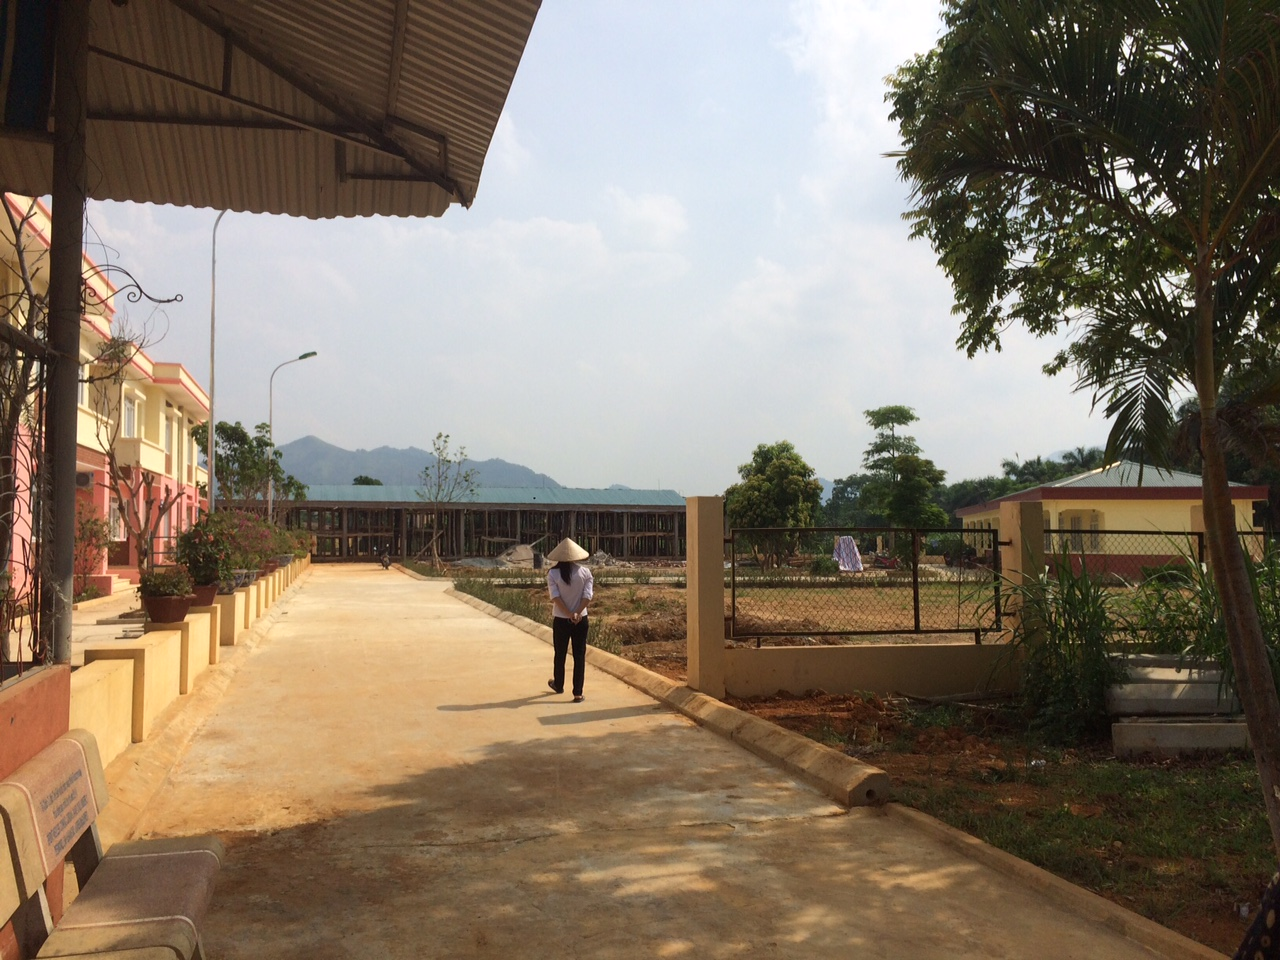 Take a virtual tour of an orphanage in Vietnam that's giving children a second chance at life